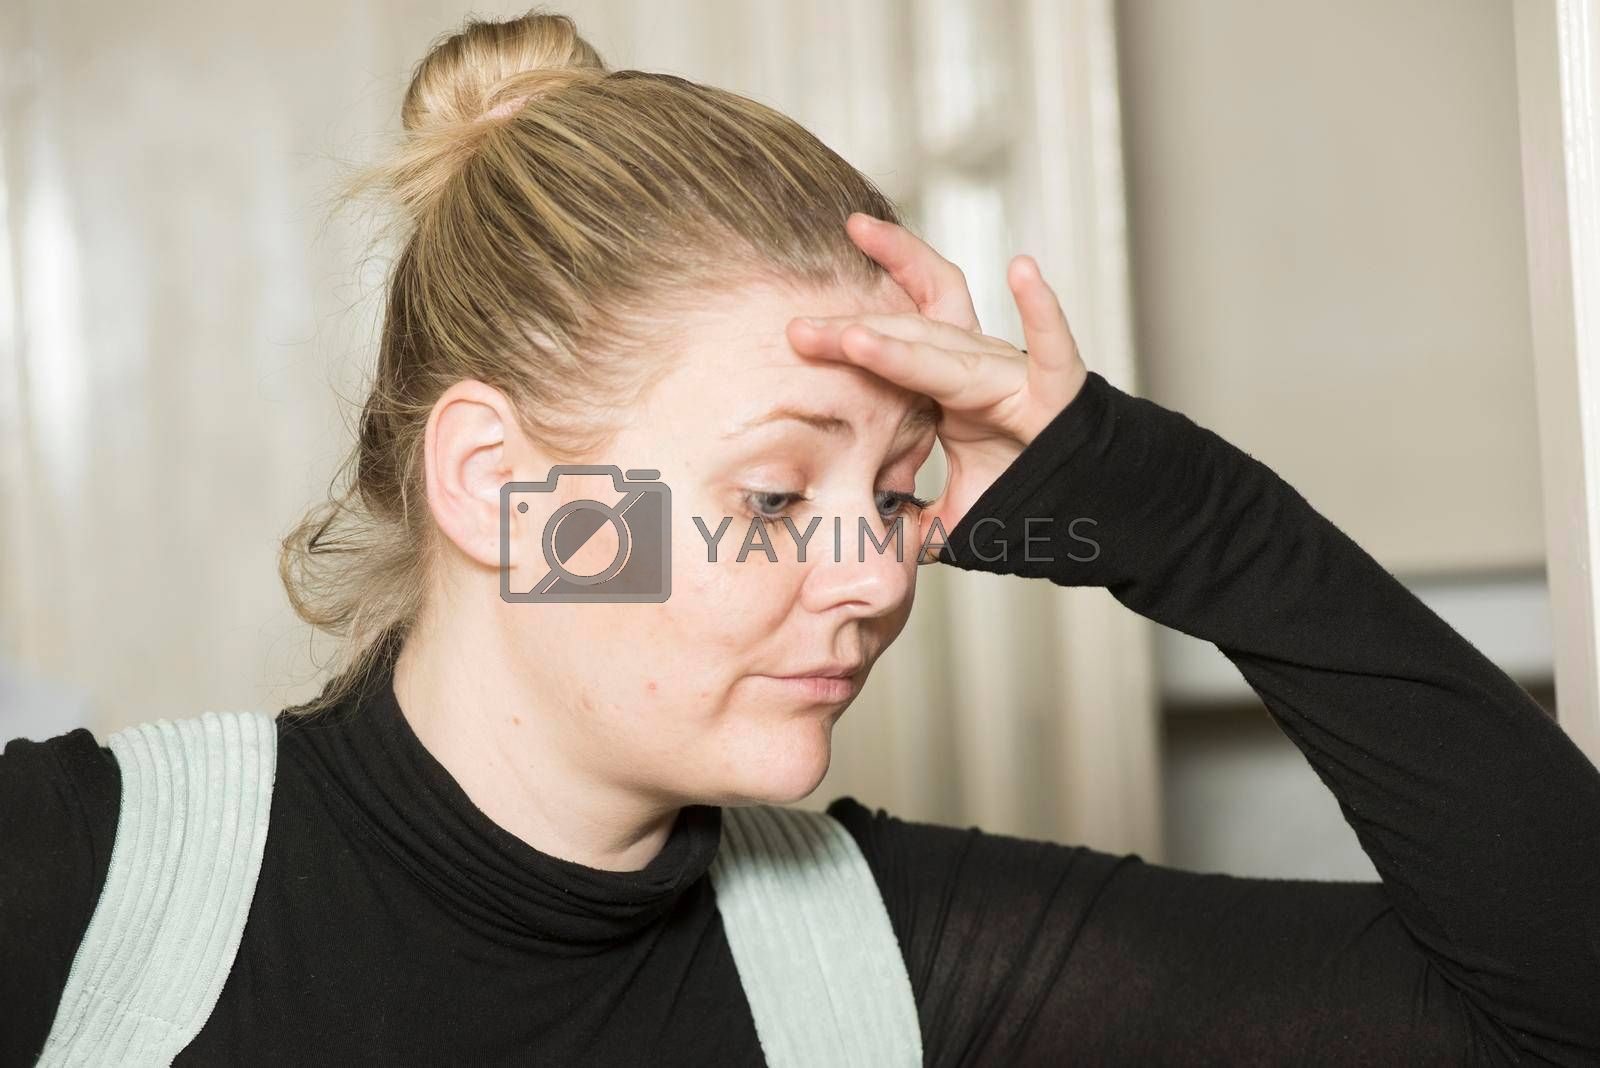 woman with headache looking annoyed and holding her head with her hand